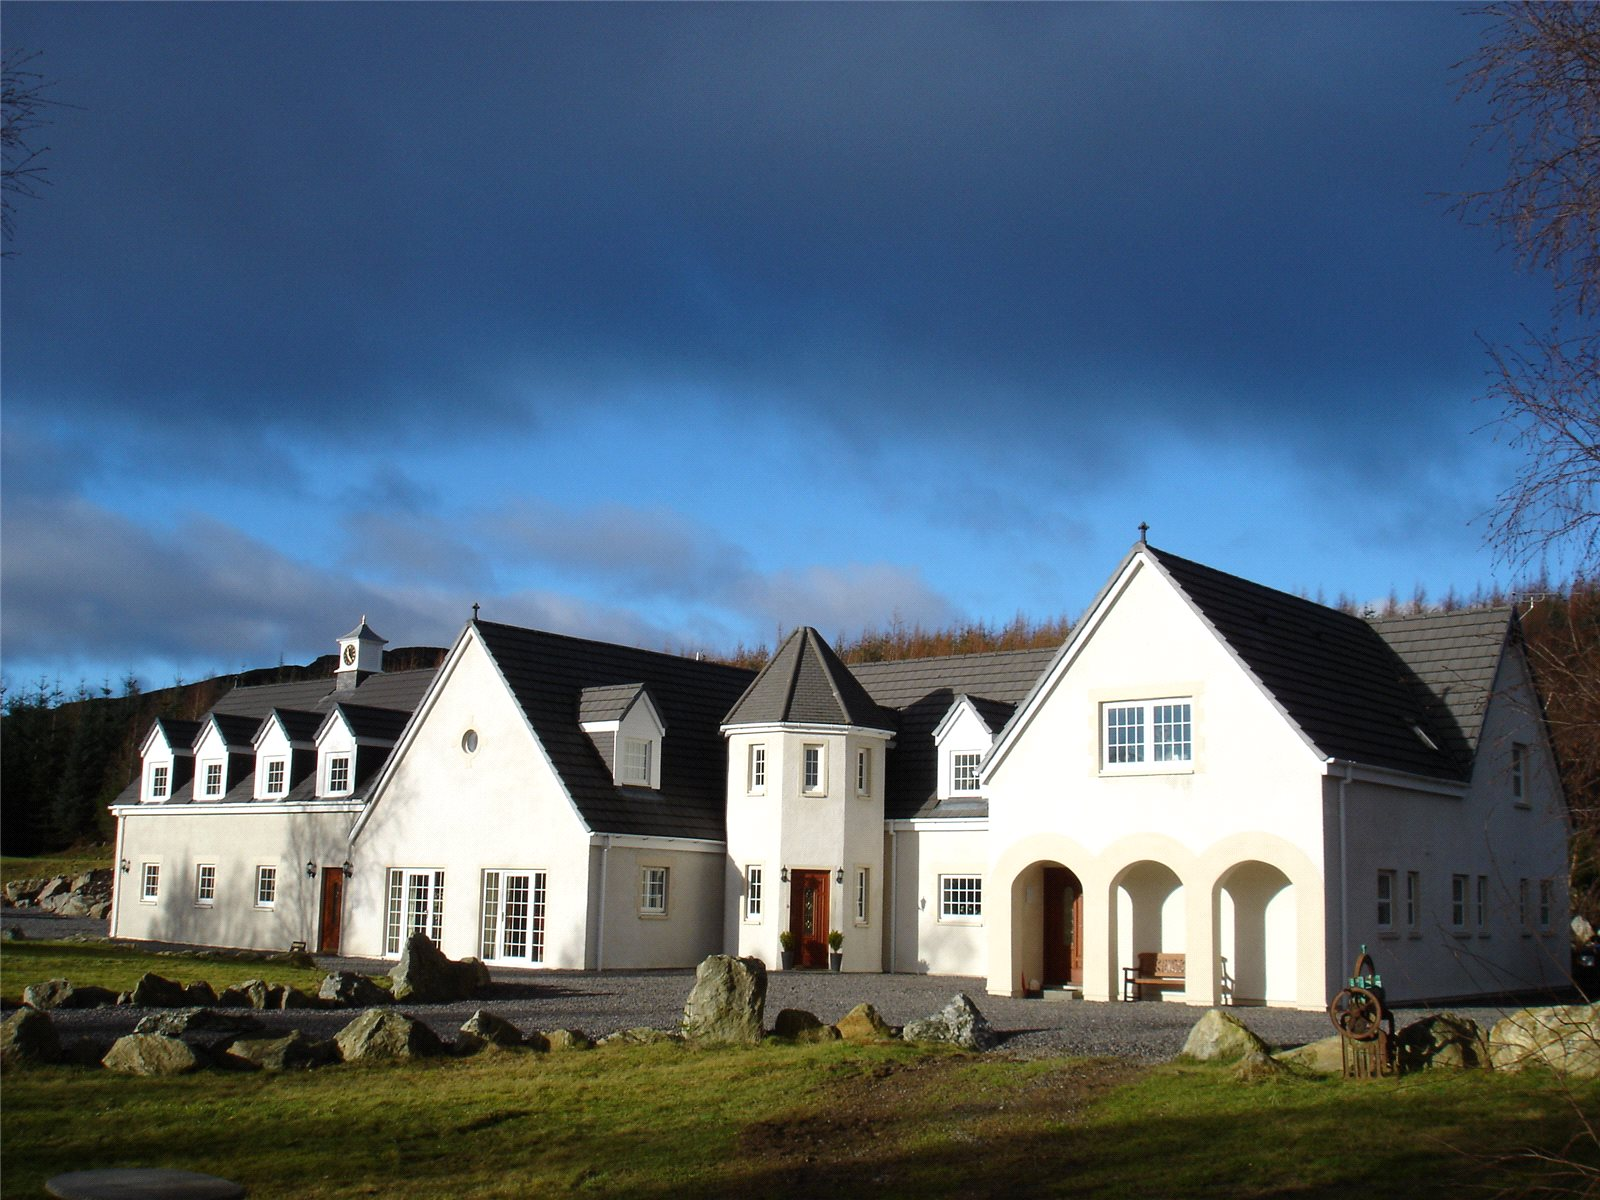 Apartments / Residences for Sale at Farr, Inverness, IV2 Inverness, Scotland